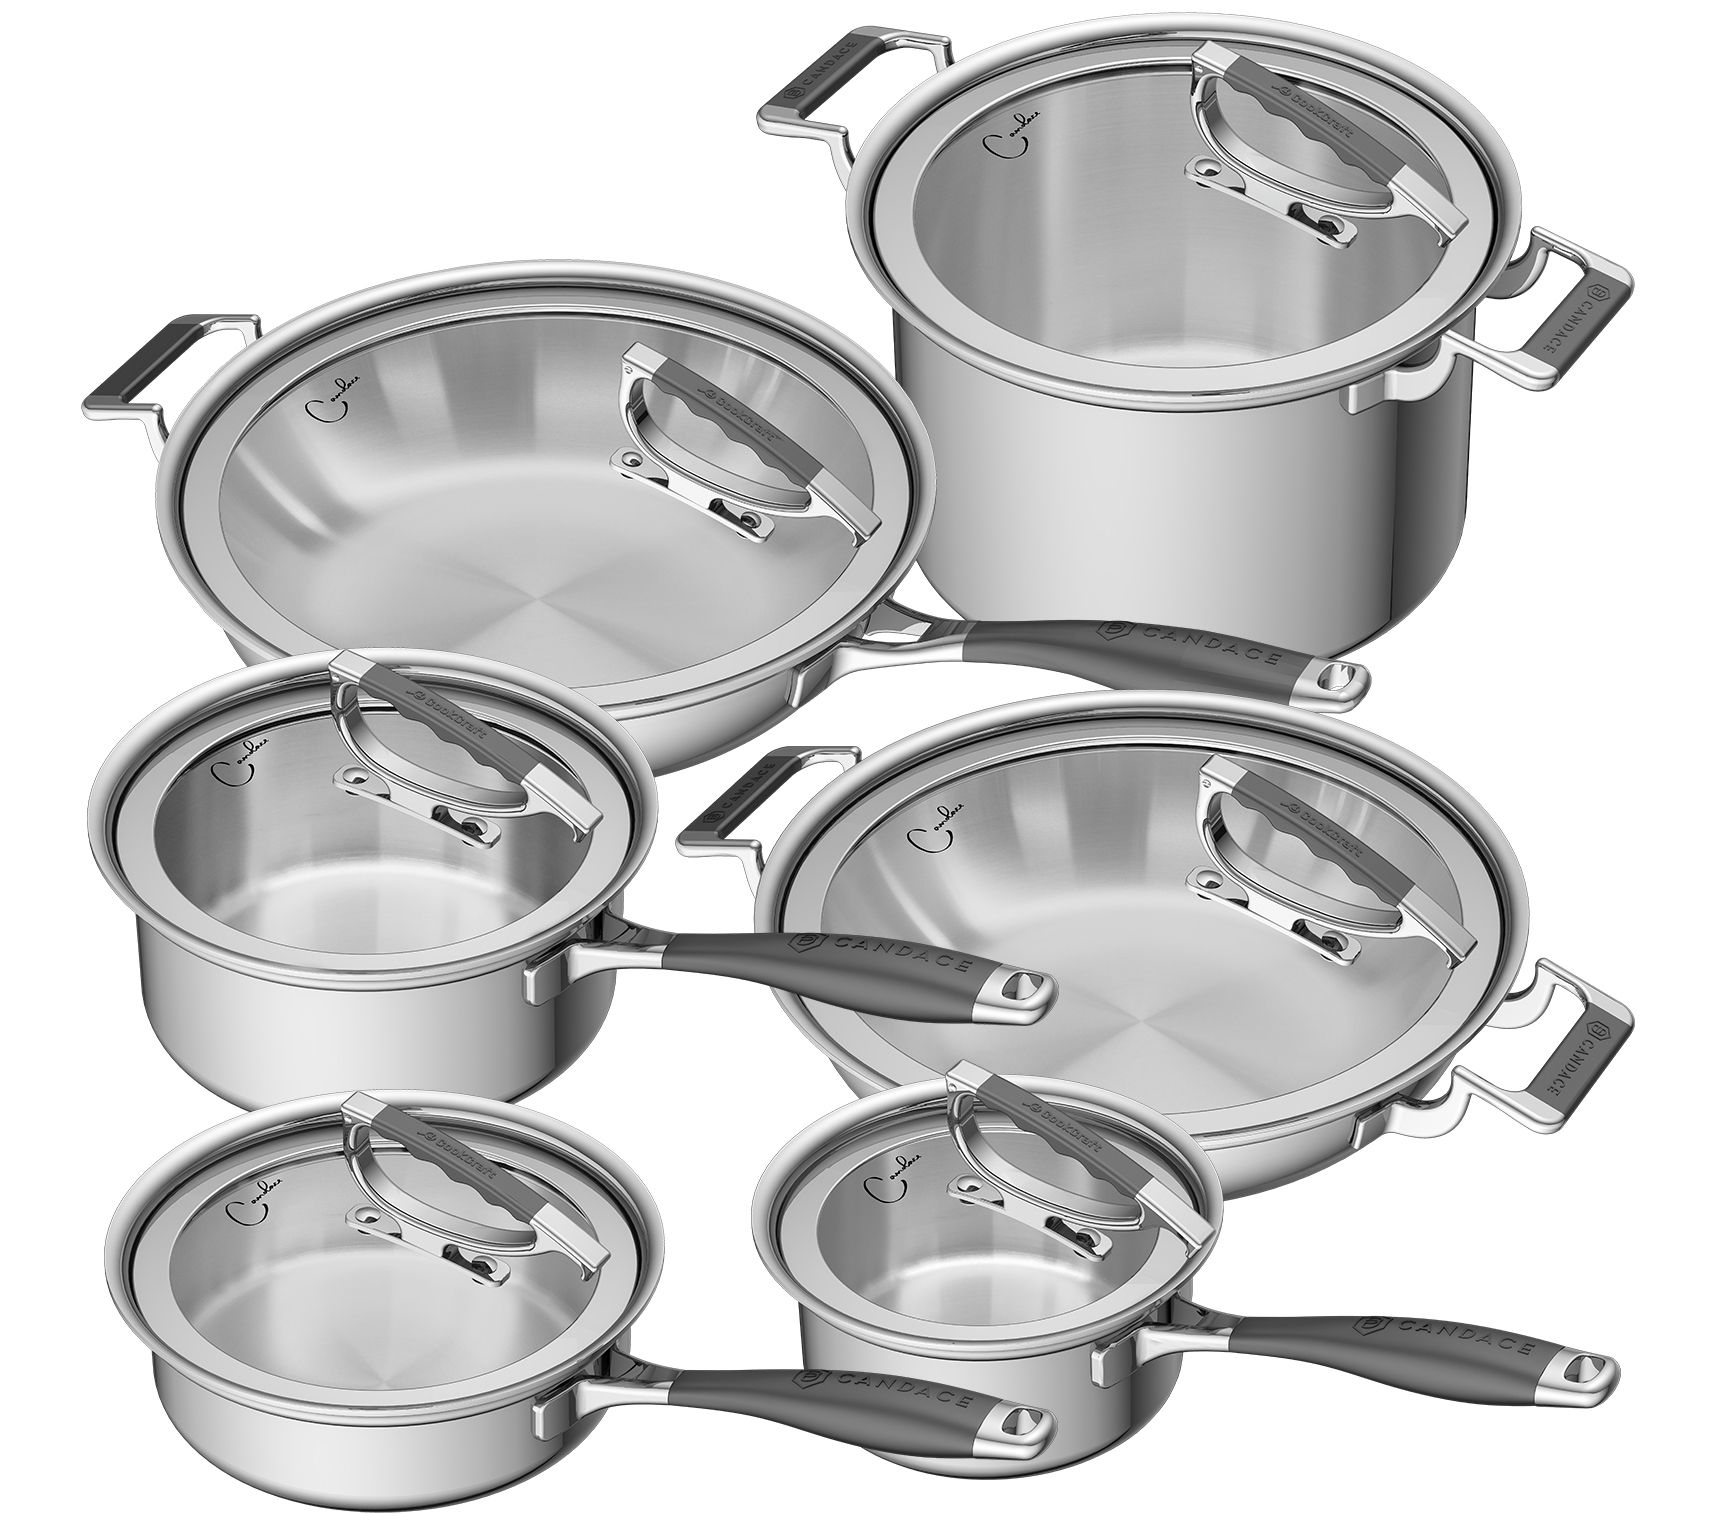 Cookcraft By Candace 12 Piece Cookware Set Qvc Com